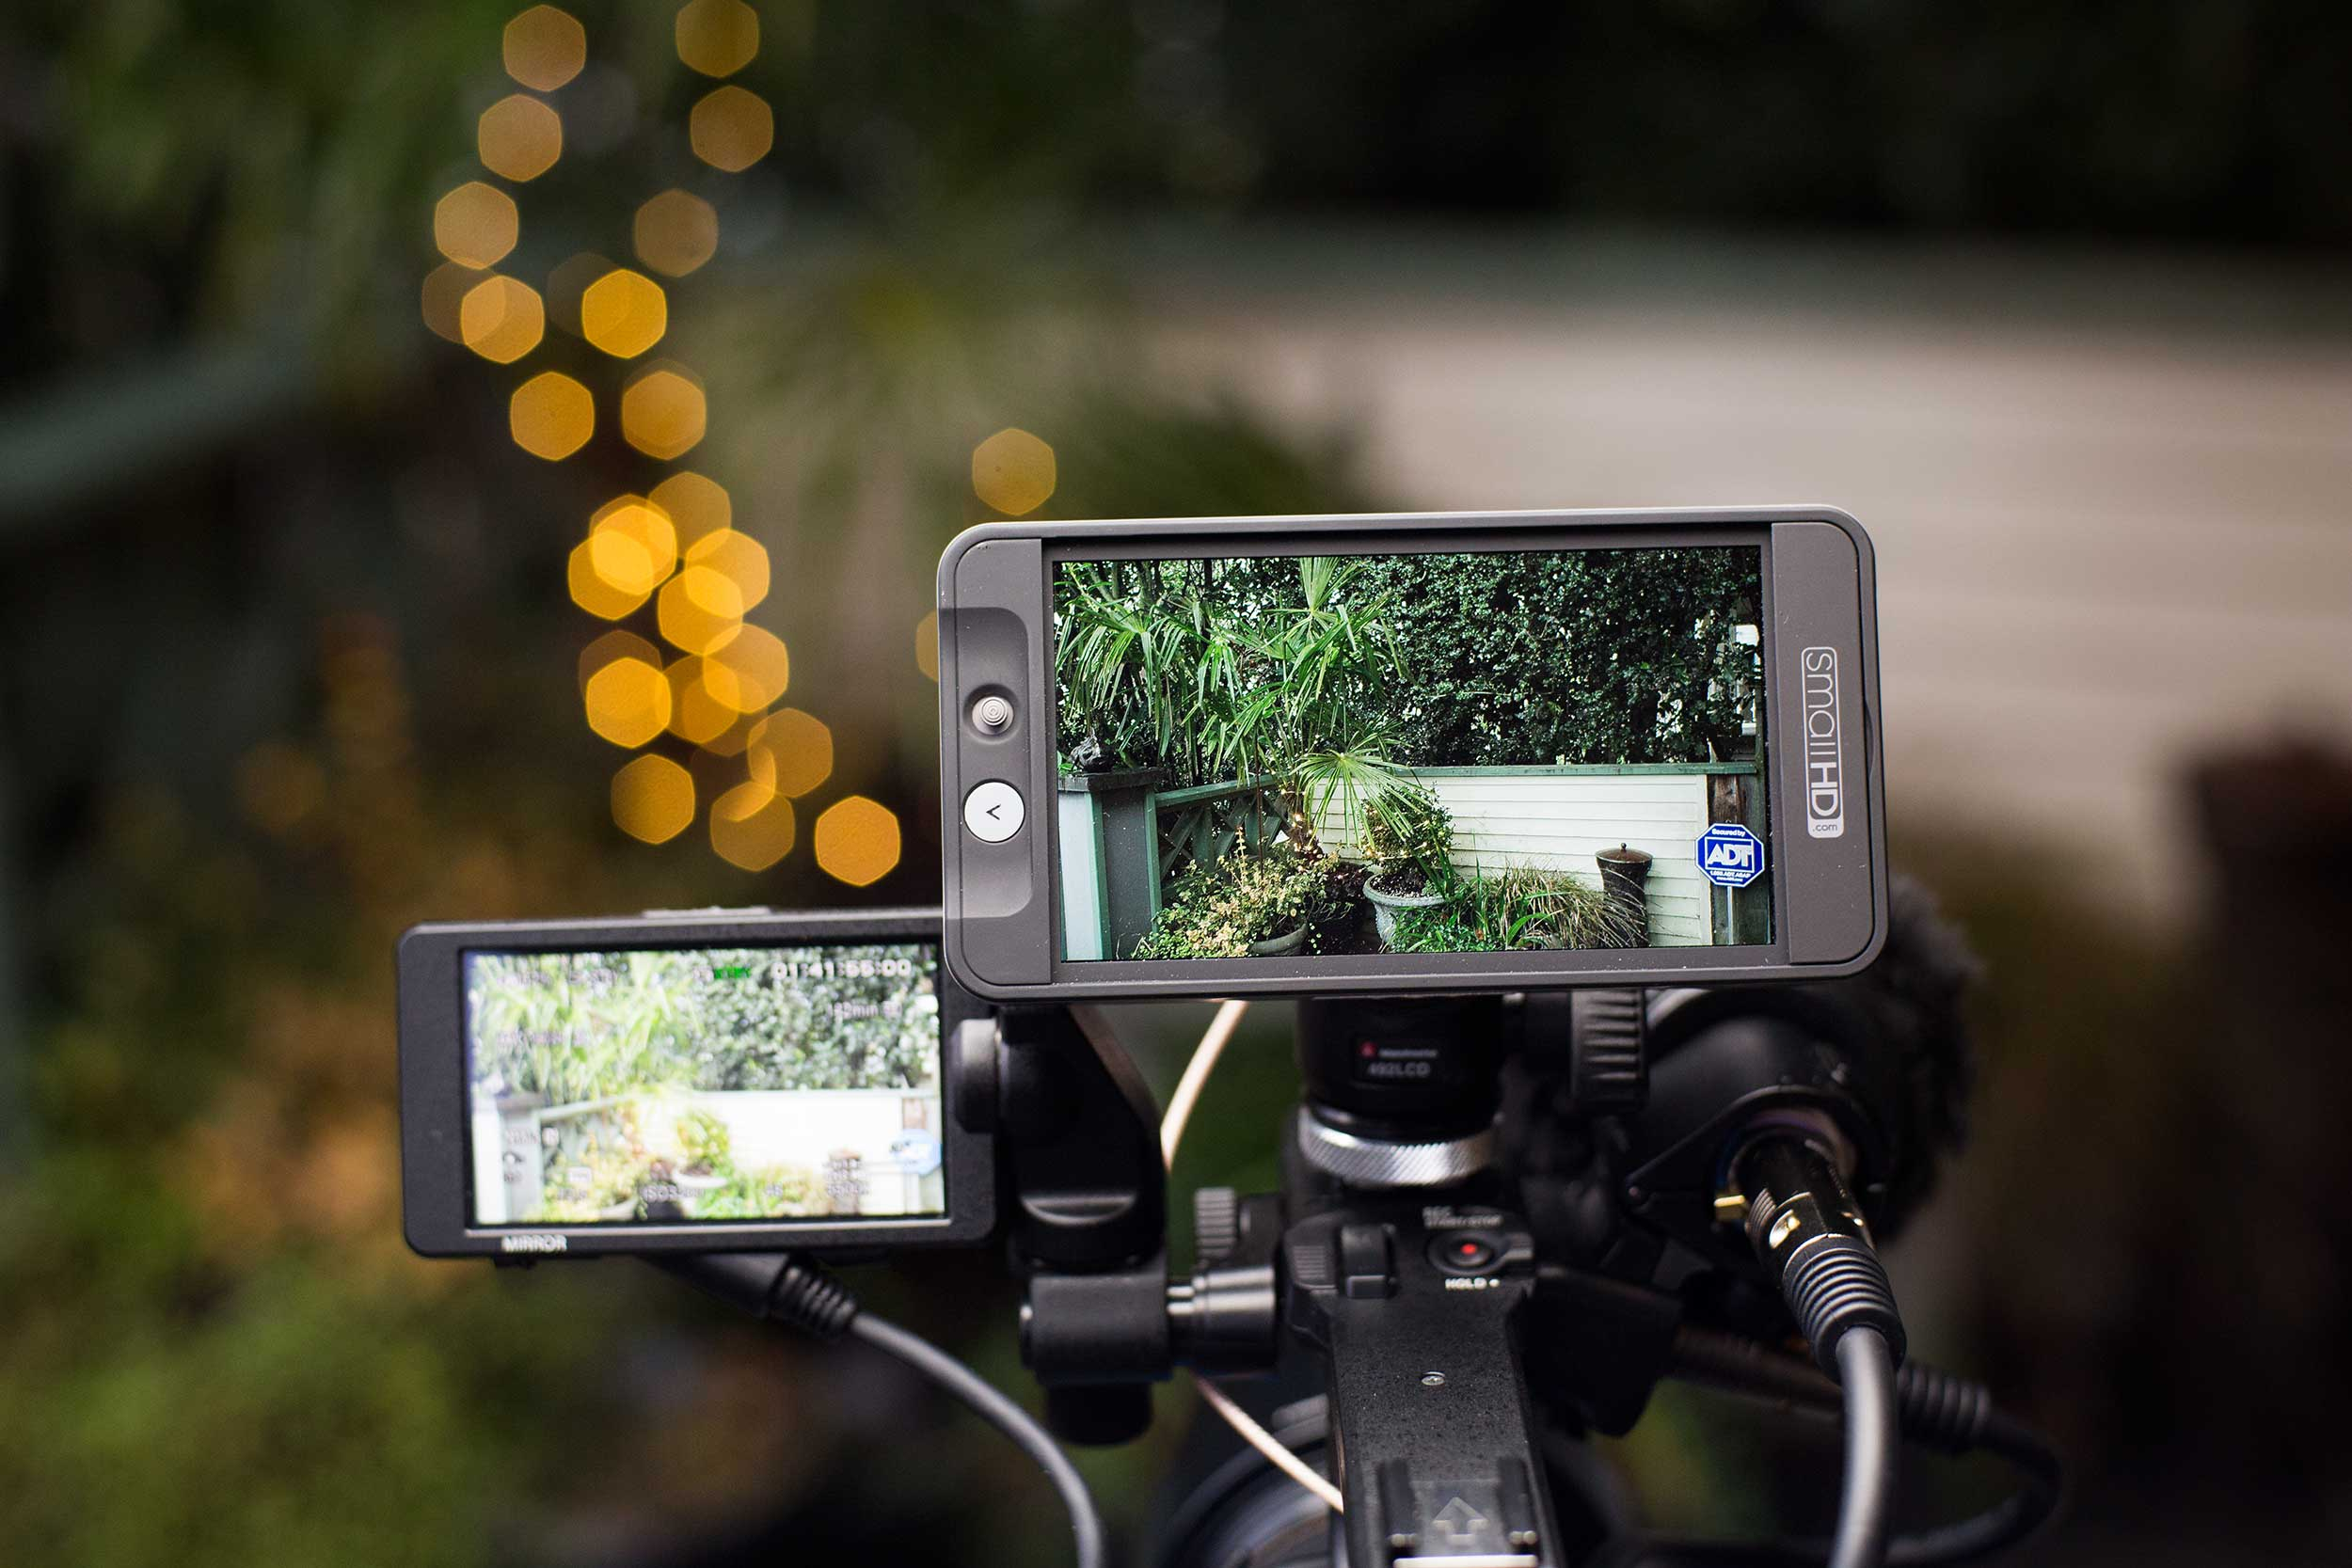 Why the SmallHD 502 crushes Sony FS5's built-in LCD - Dan McComb